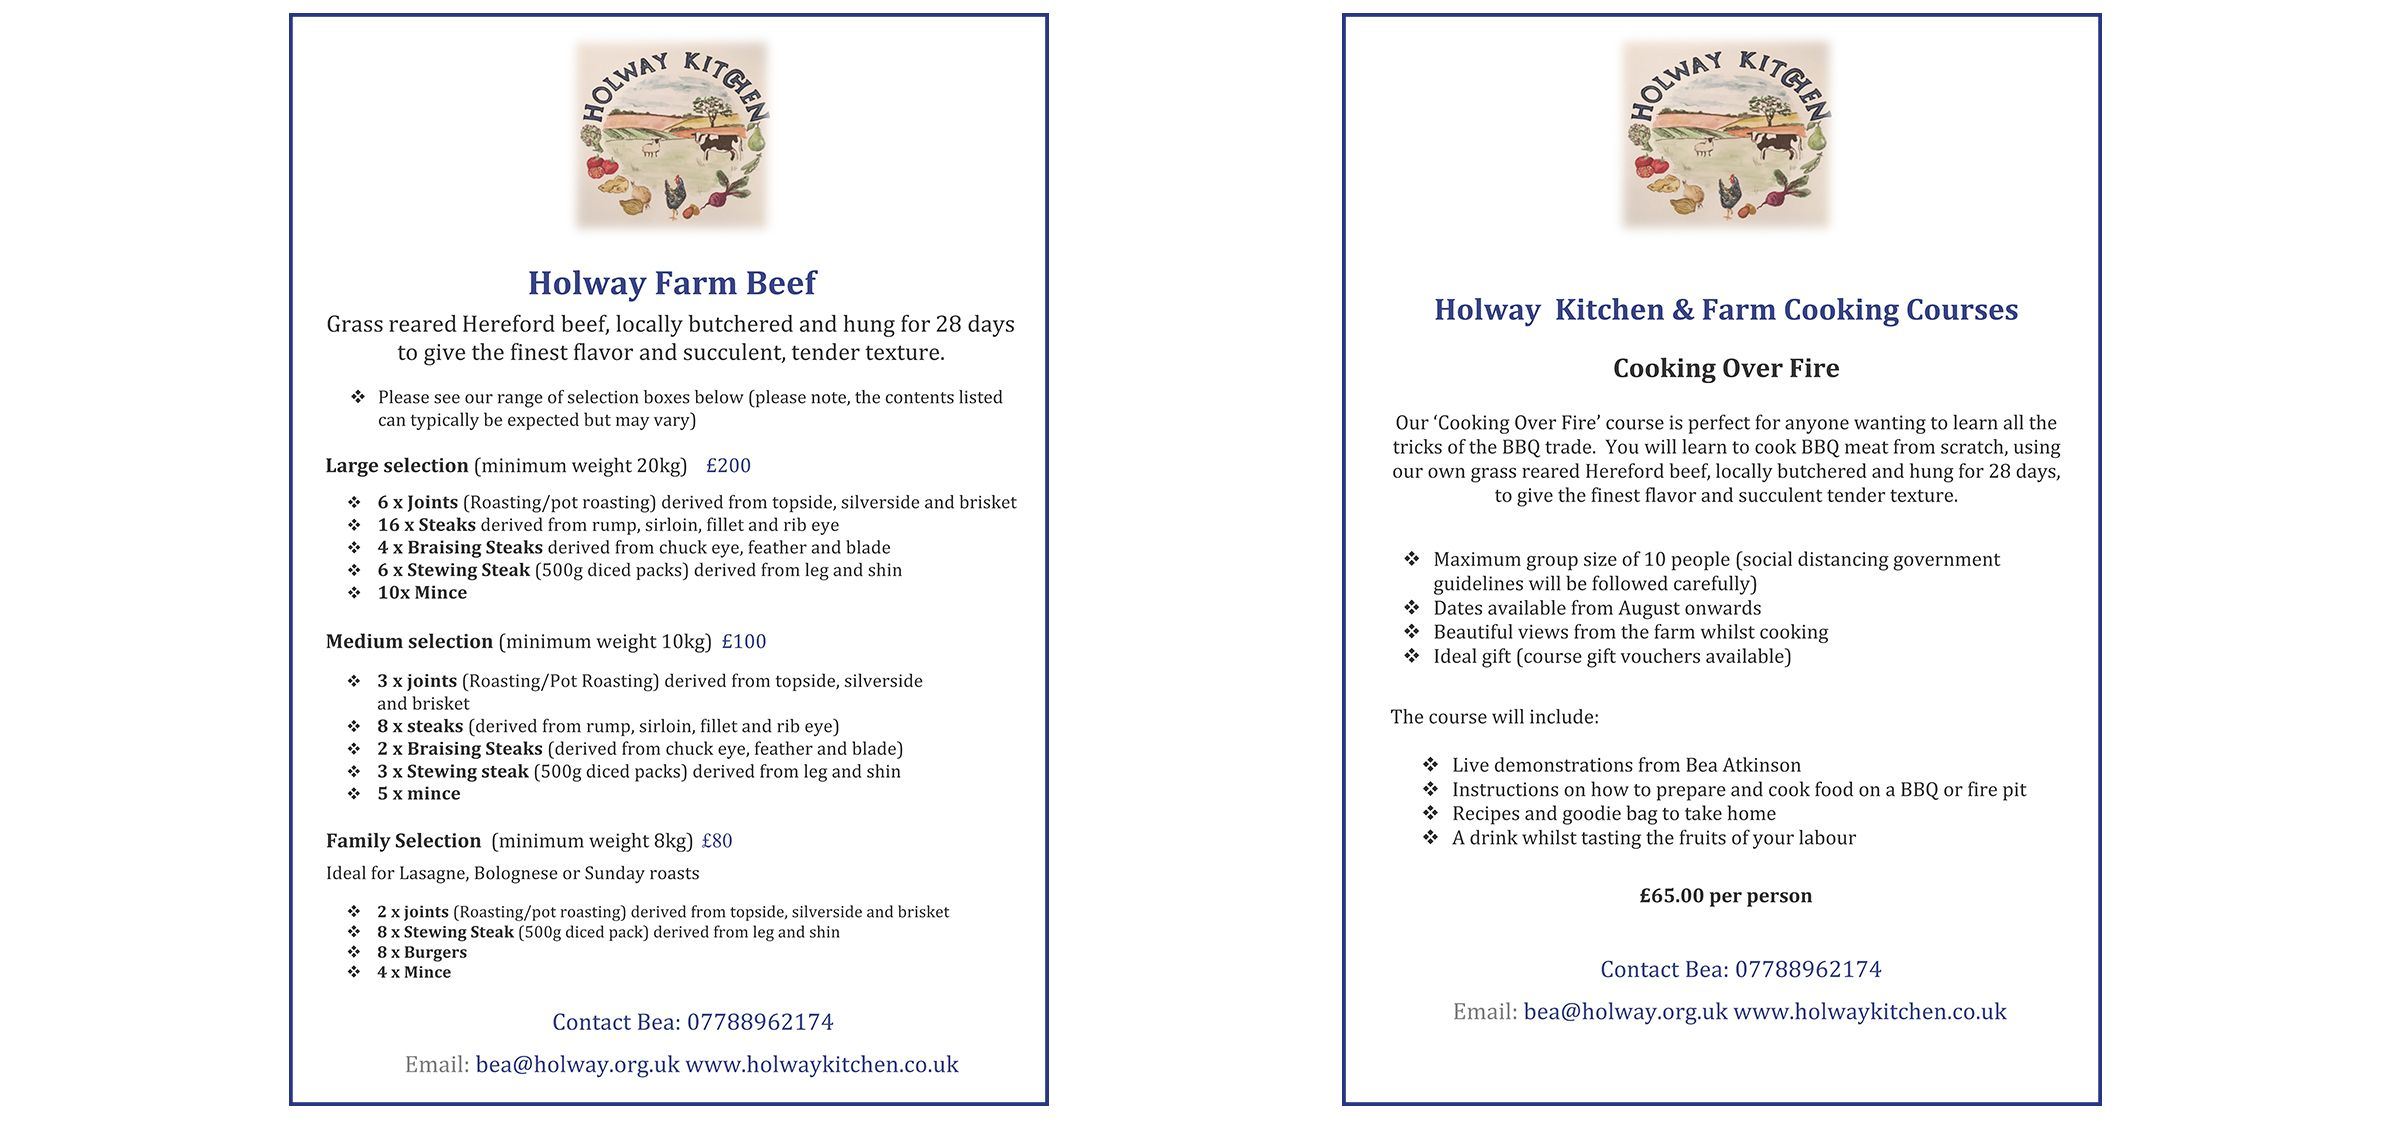 Holway Farm beef boxes and Cooking Over Fire info